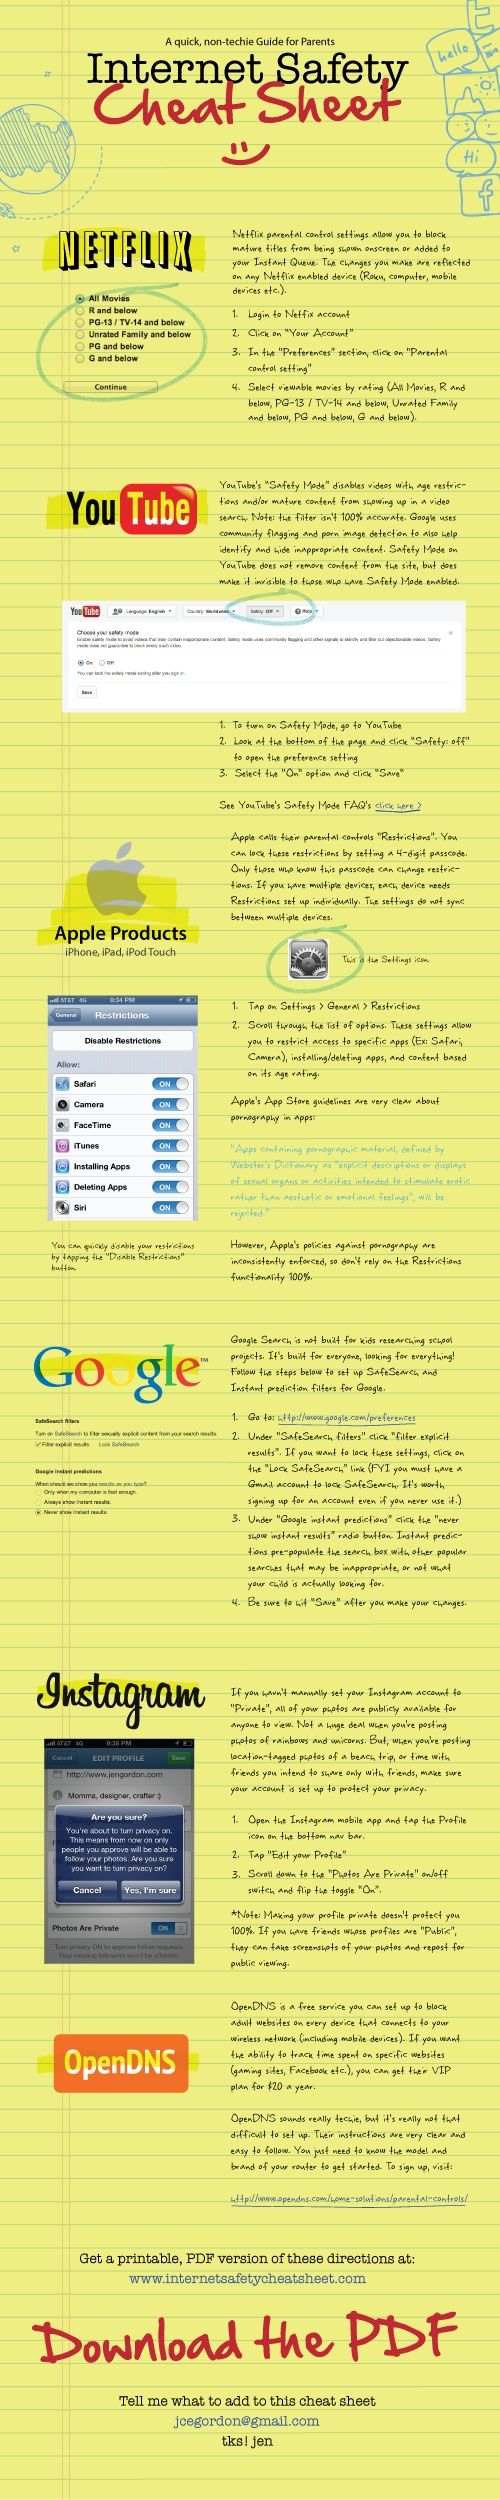 Awesome internet safety cheat sheet   Do this on each device